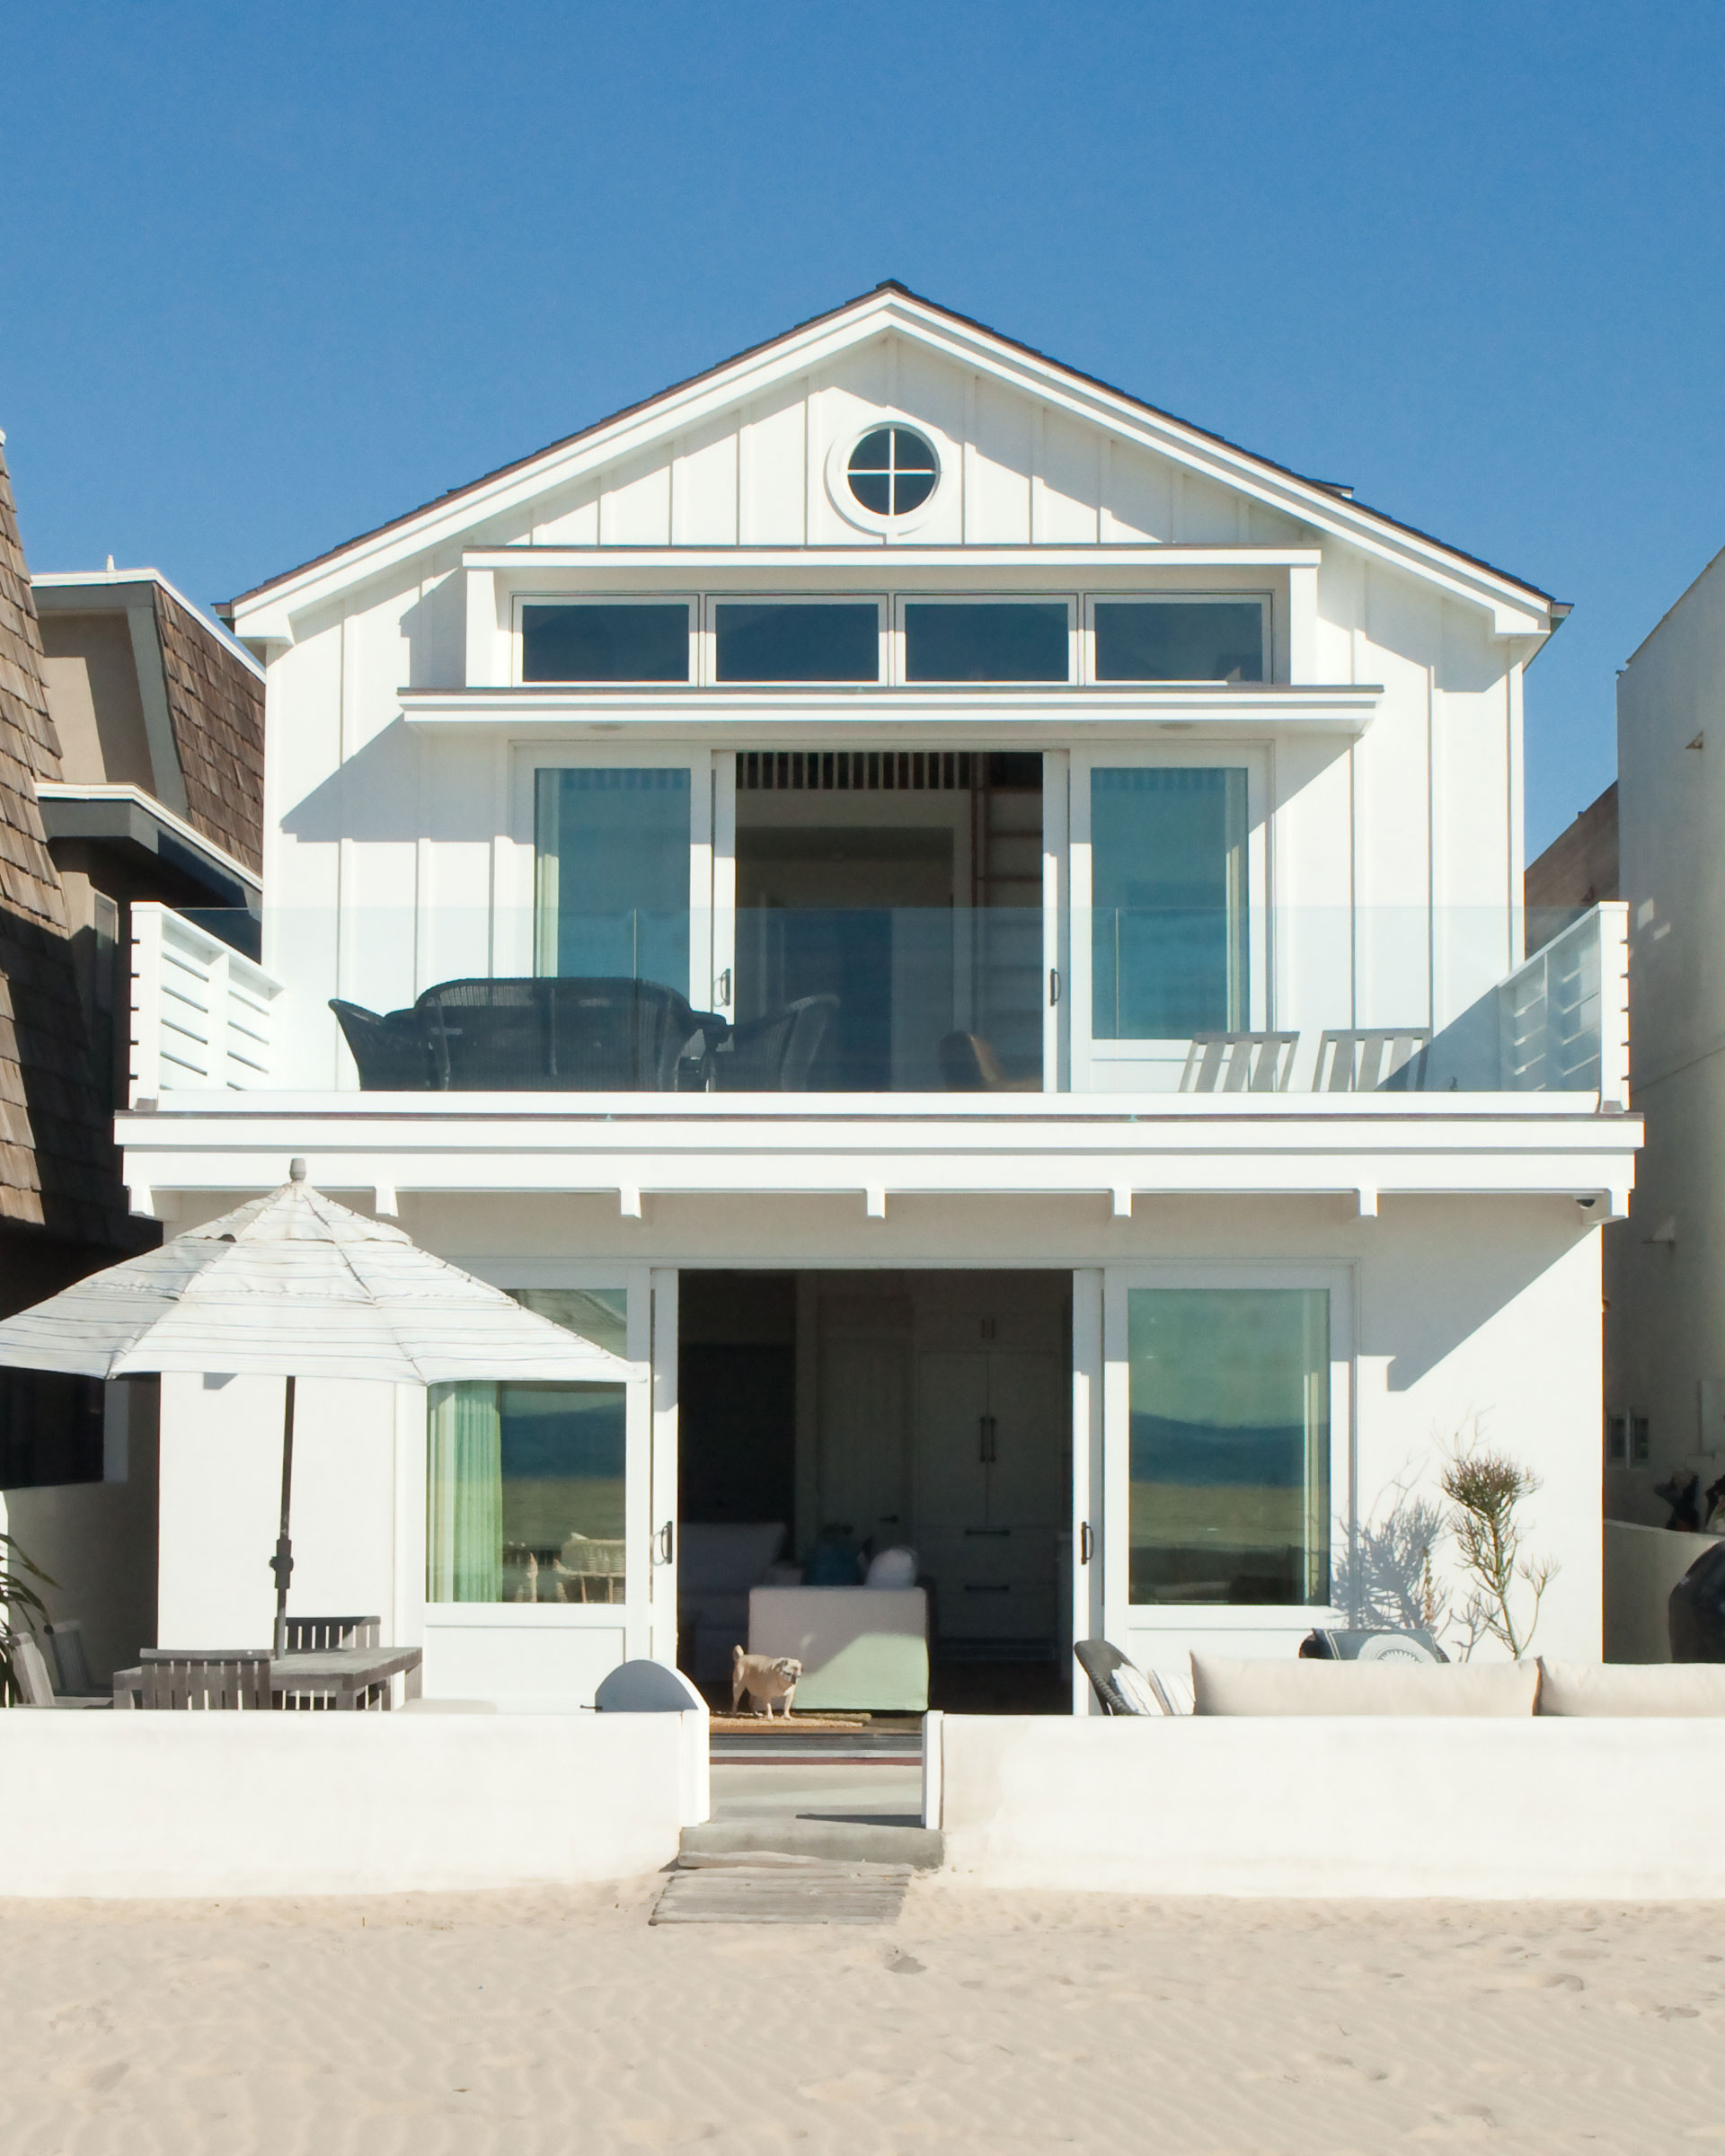 8 striking beach houses on the california coast